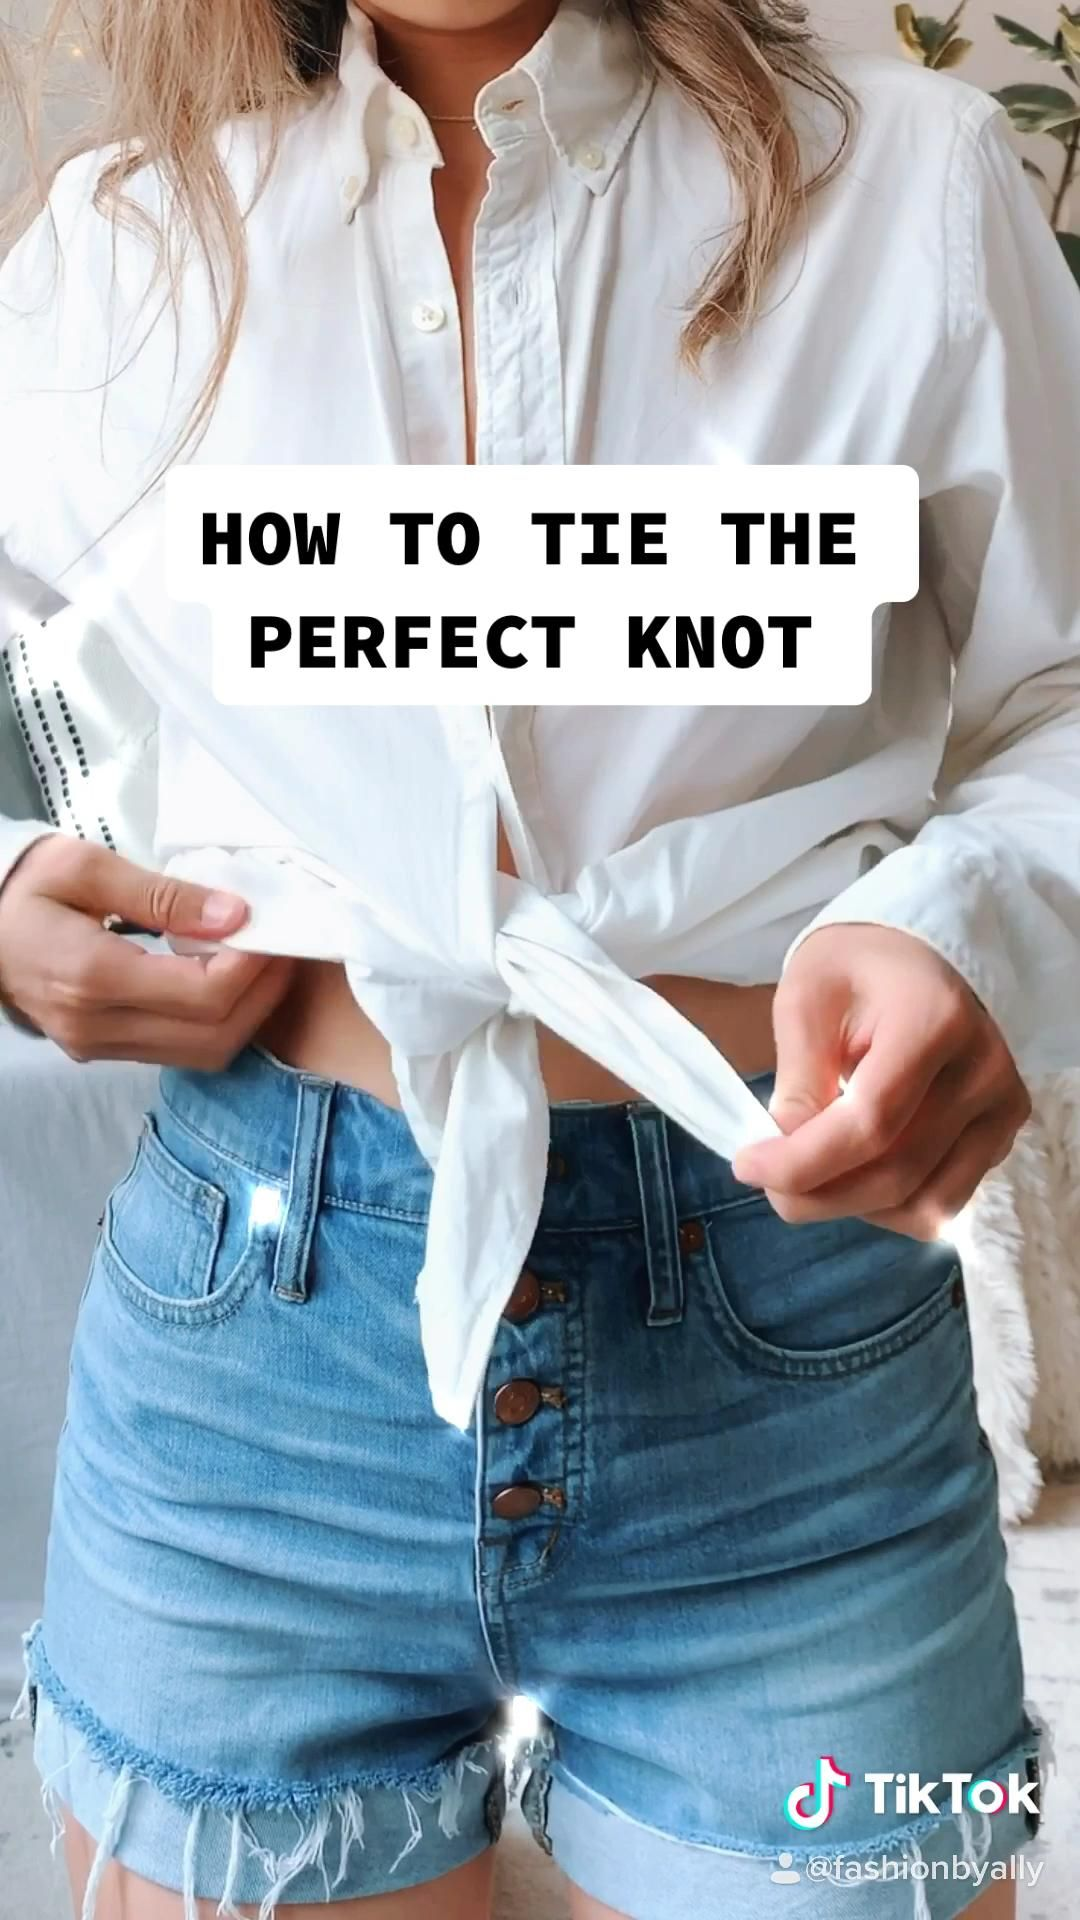 How To Tie The Perfect Knot Video Shirt Refashion Casual Outfits Fashion Hacks Clothes